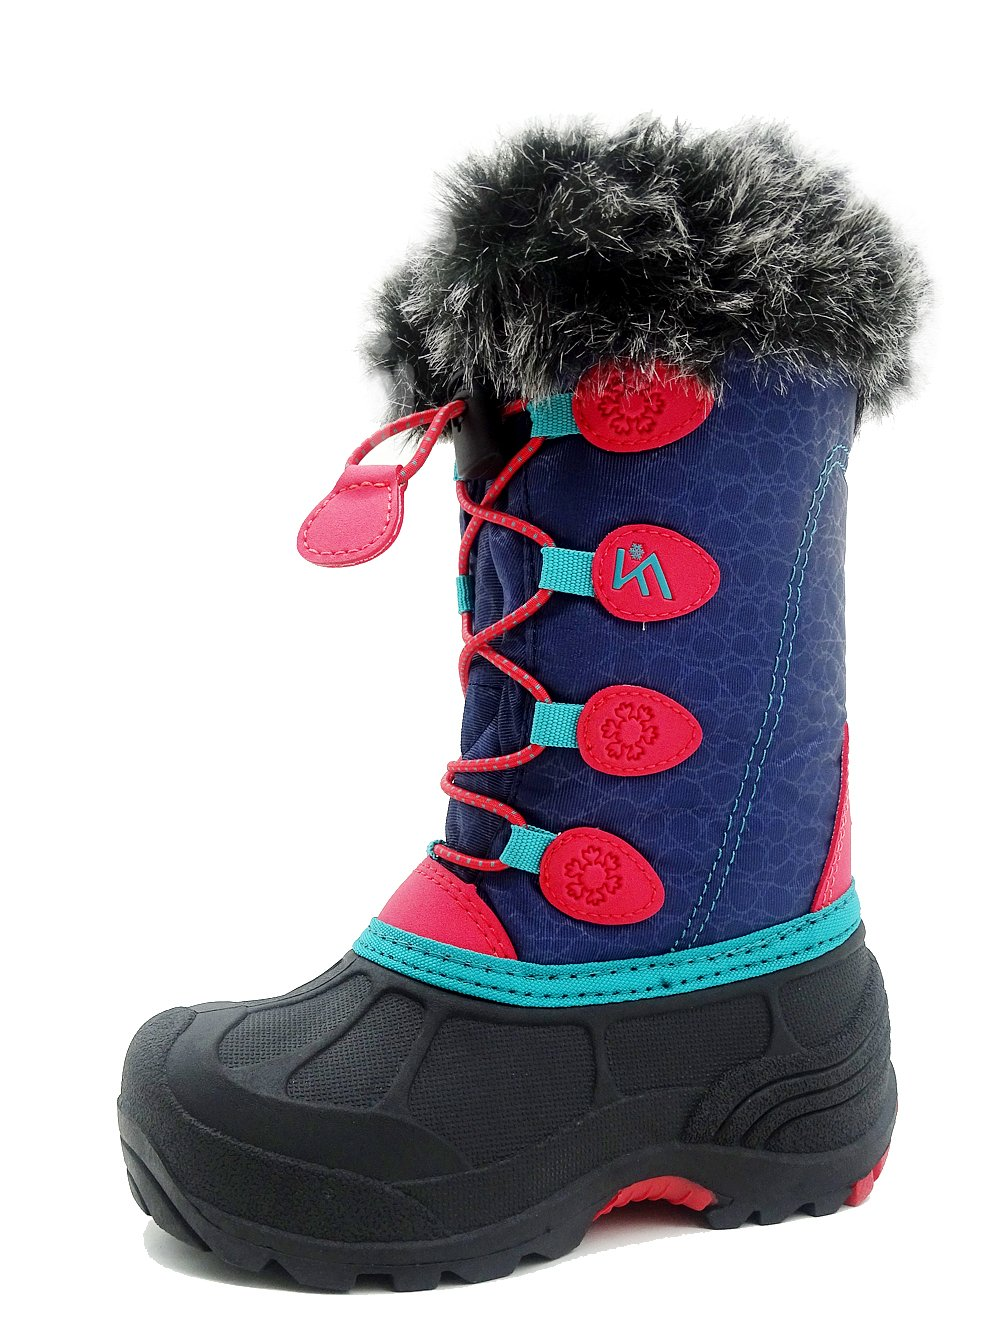 Kids Winter Snow Boots Waterproof and Insulated for Girls and Boys (12 M US Little Kid, Red)